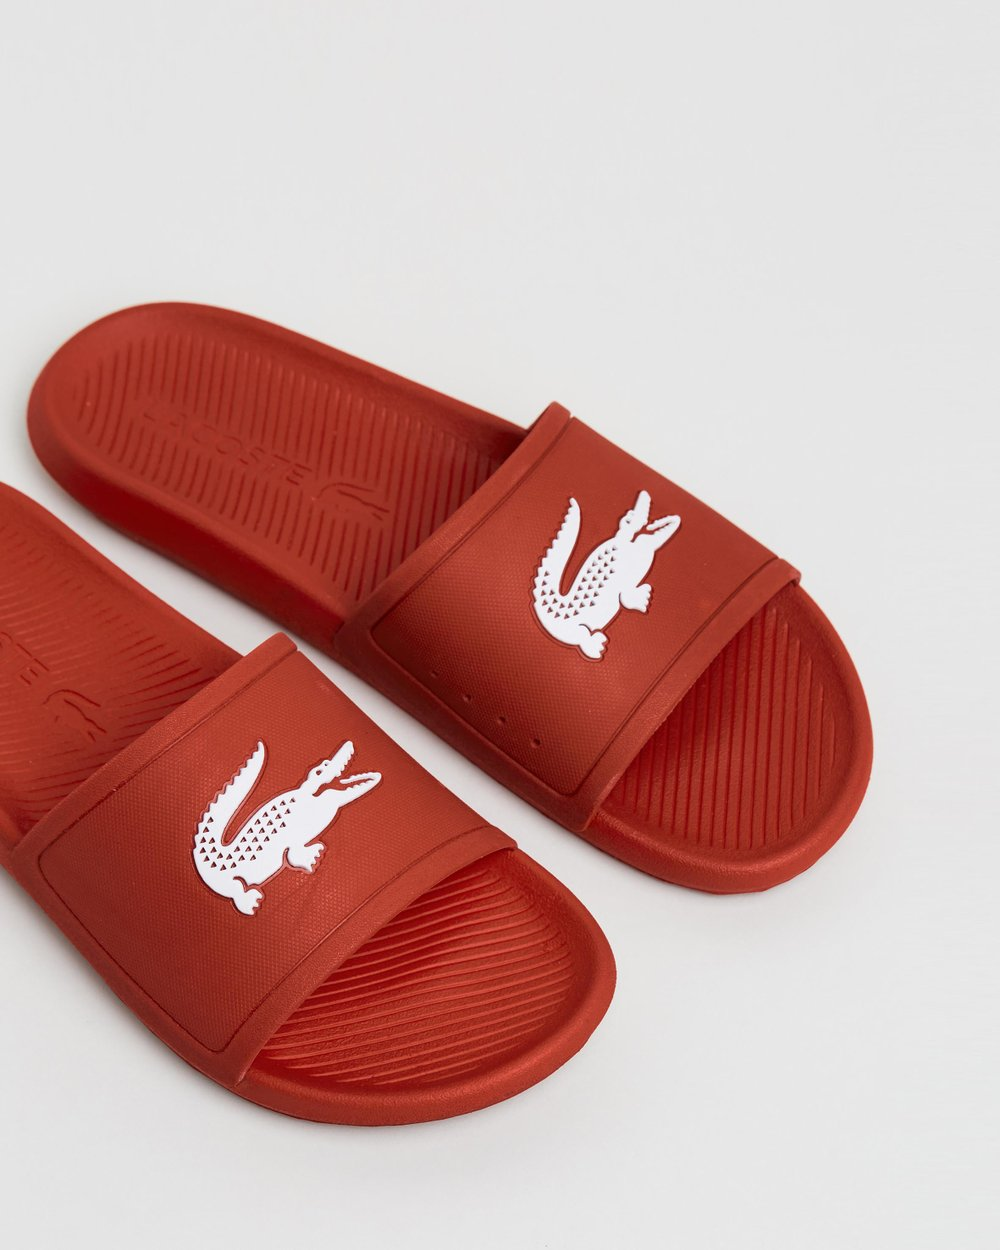 7a26c28bf Croco Slides - Men s by Lacoste Online